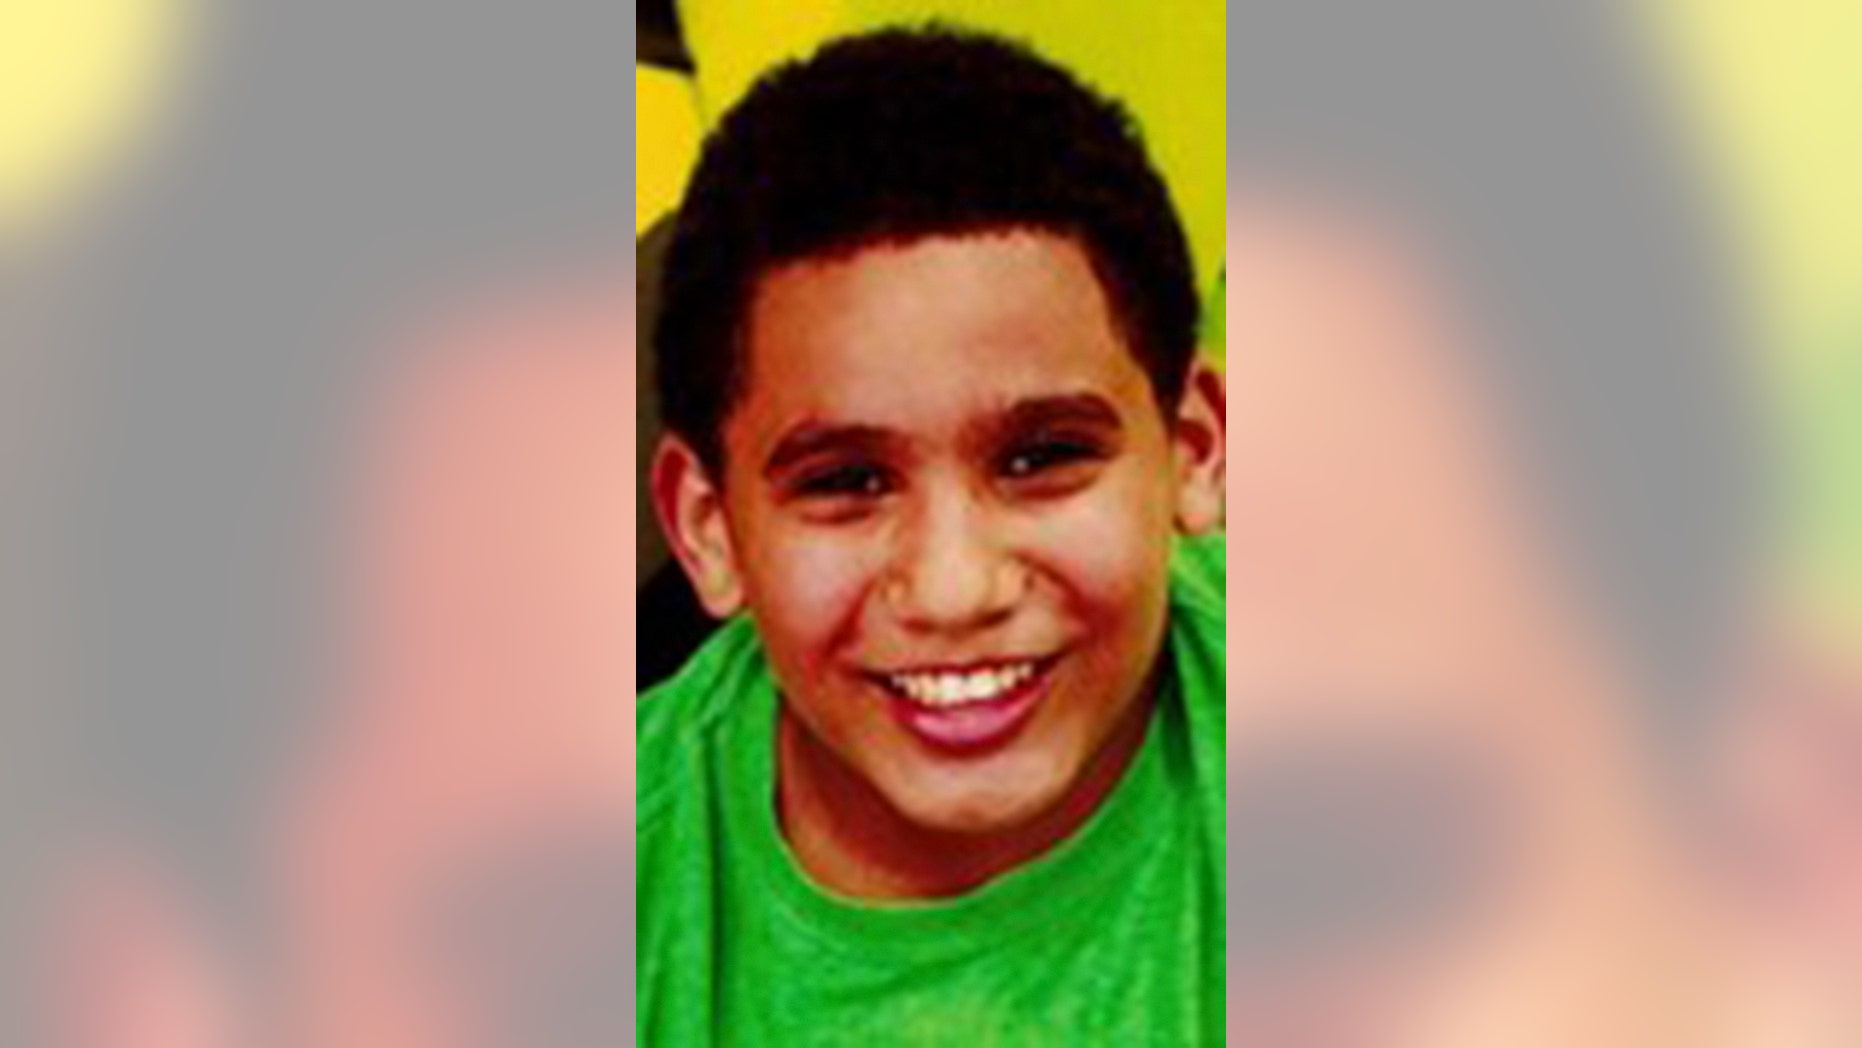 Daron Lewis Godbee suffered sudden cardiac arrest while at school, according to his obituary.